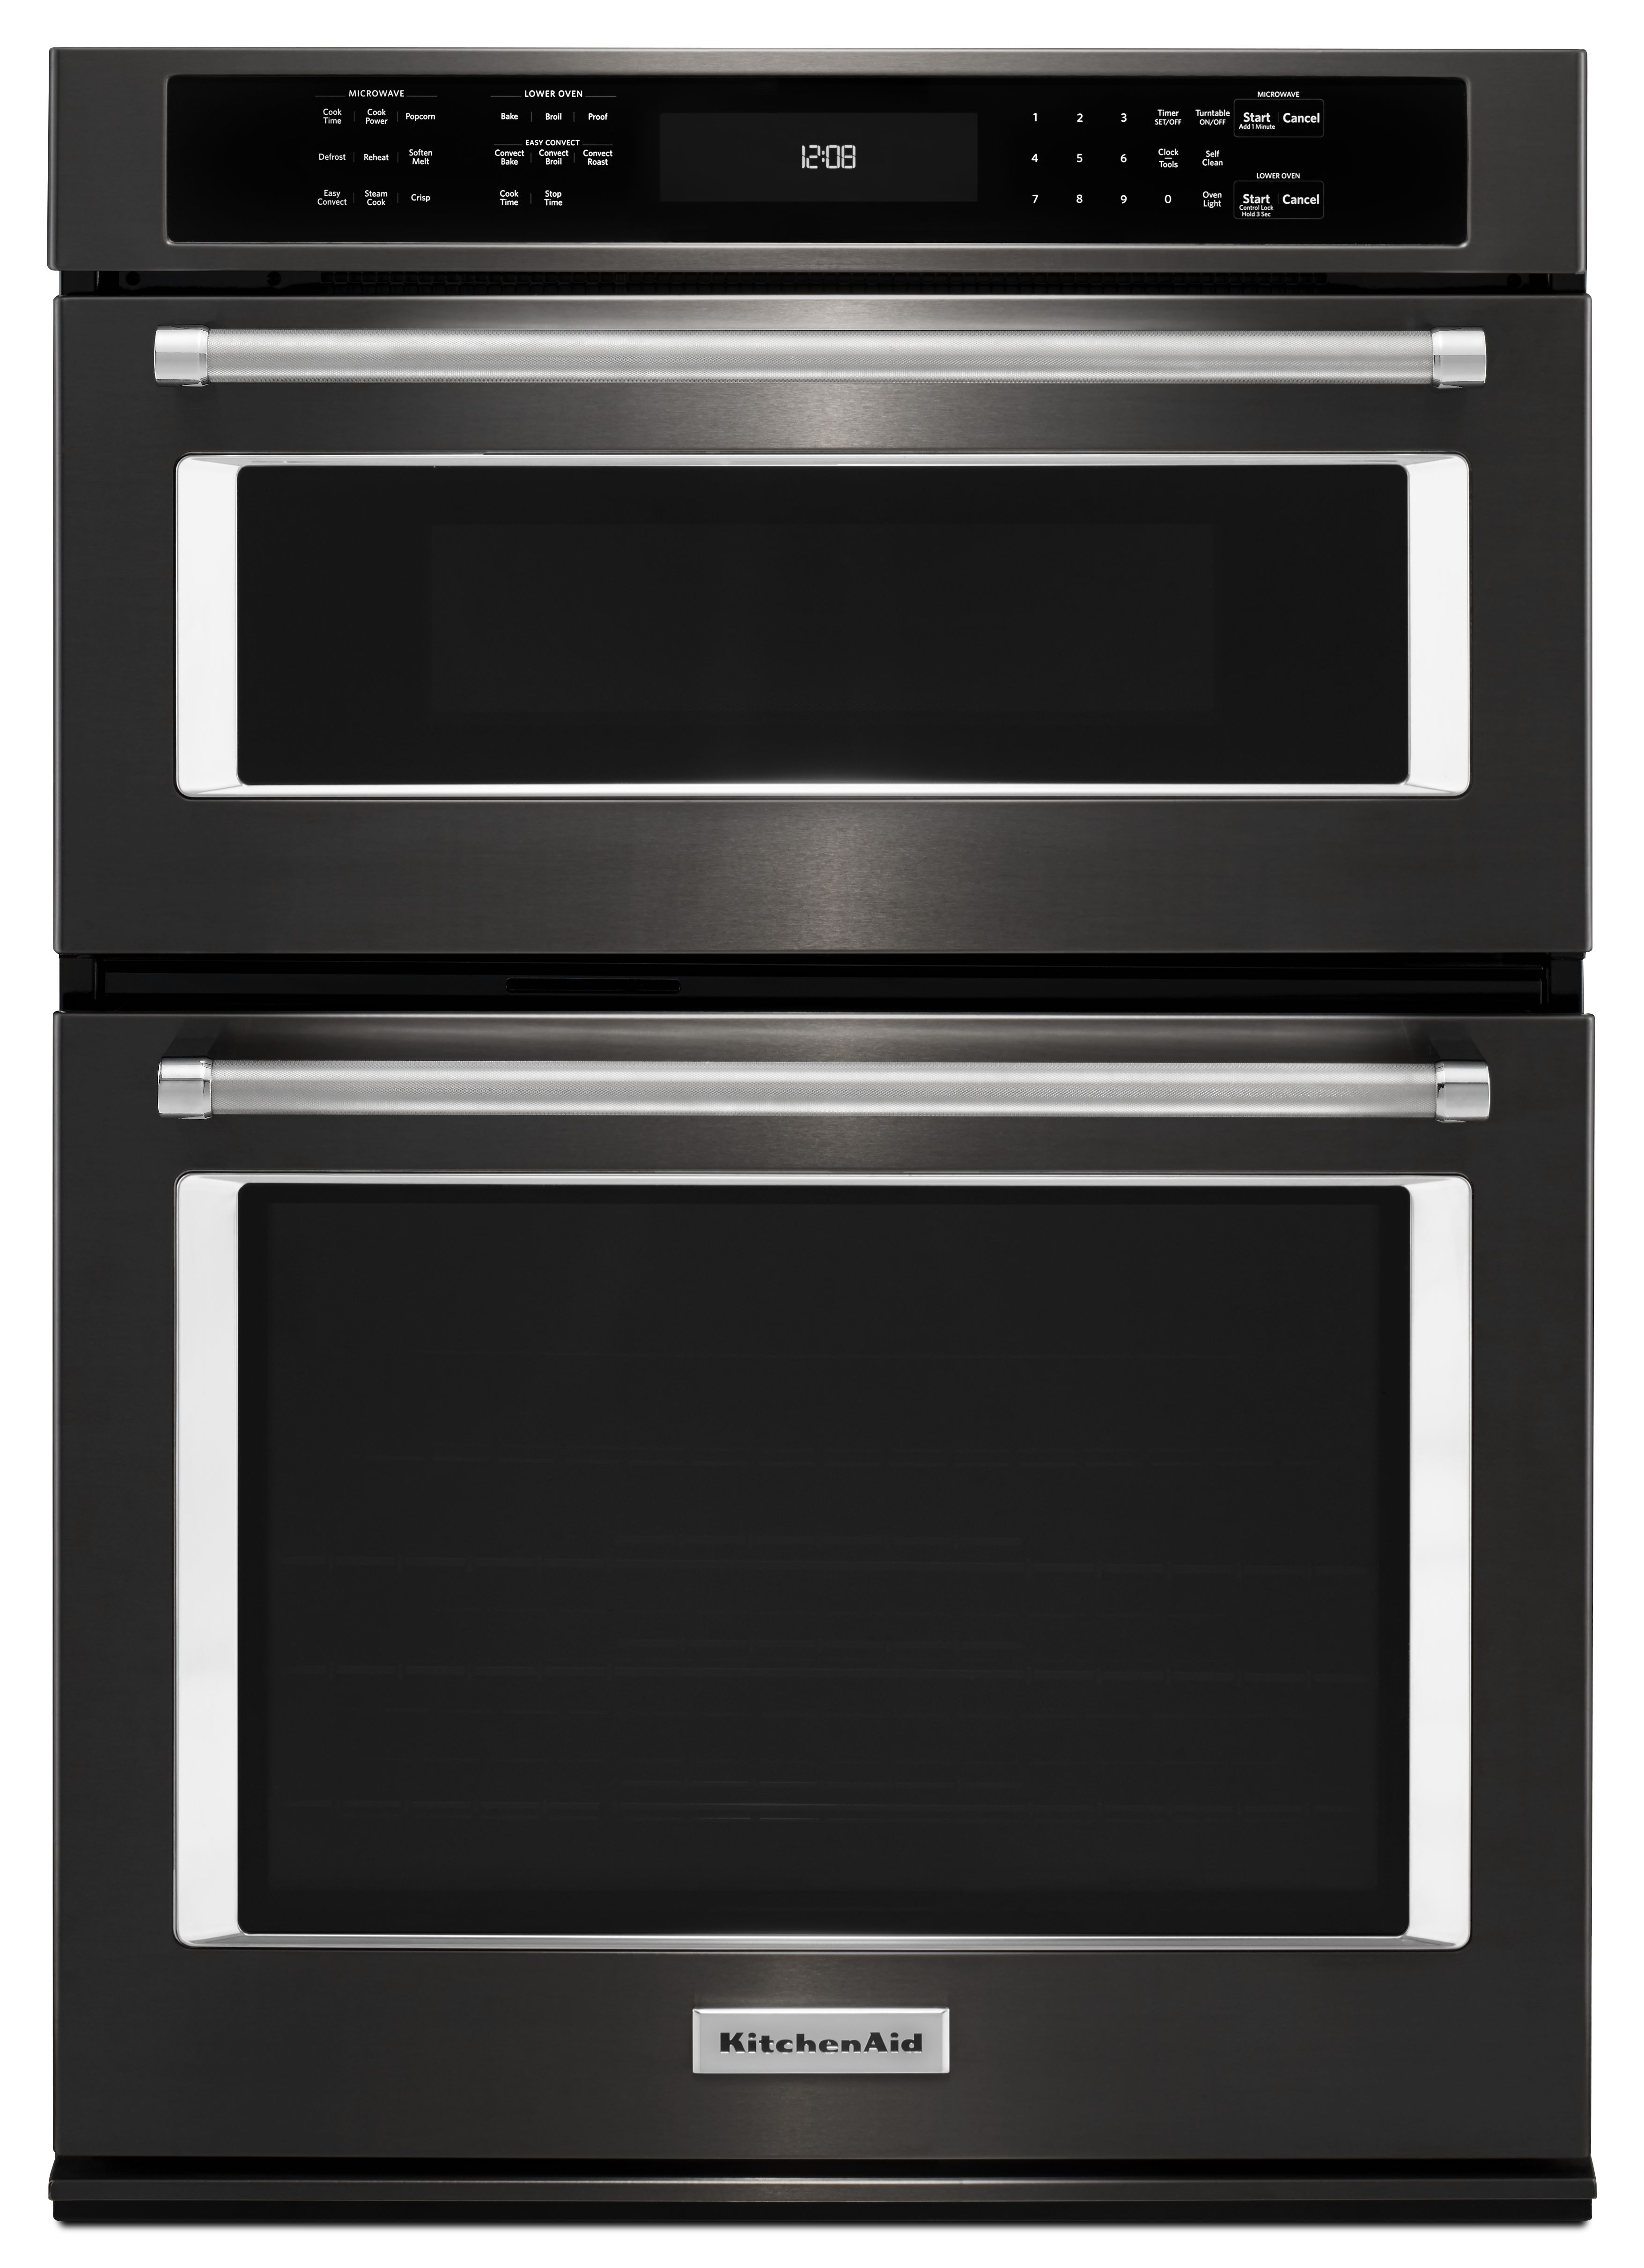 Kitchenaid 30 Electric Oven Microwave Combo Built In Black Stainless Steel